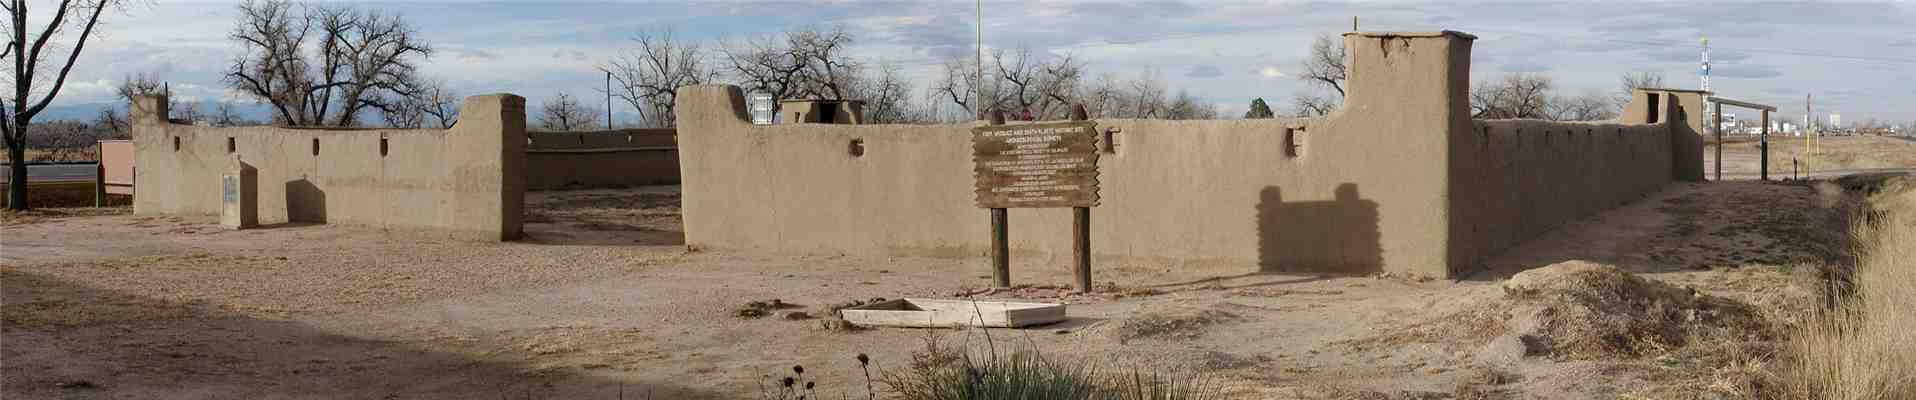 The reconstructed adobe replica of Fort Vasquez.